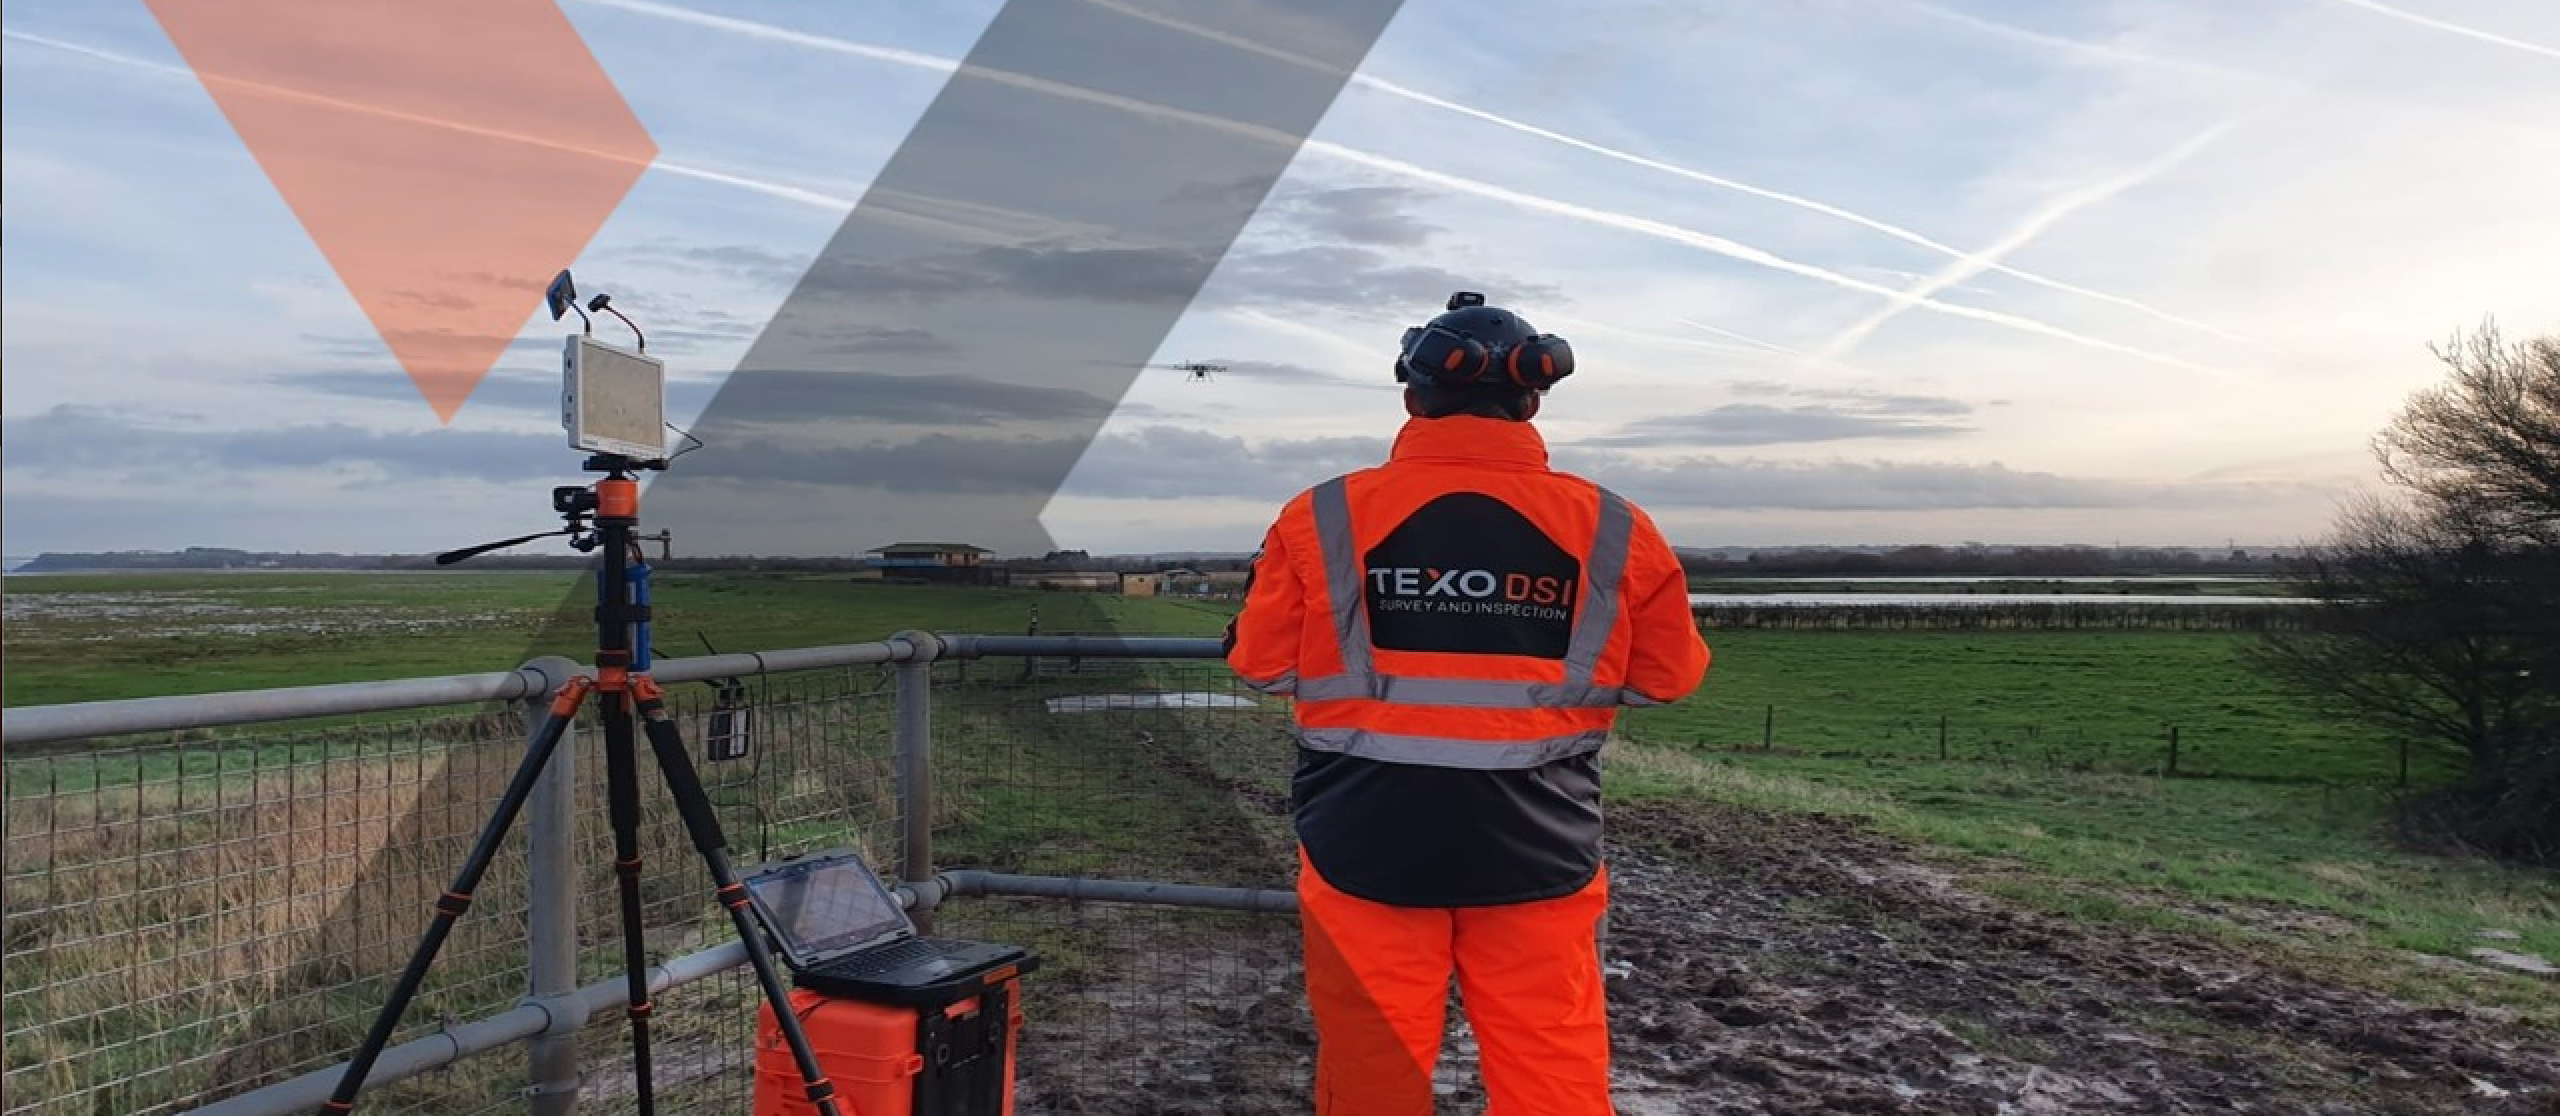 Texo DSI Is Recruiting Head Of Survey & Construction